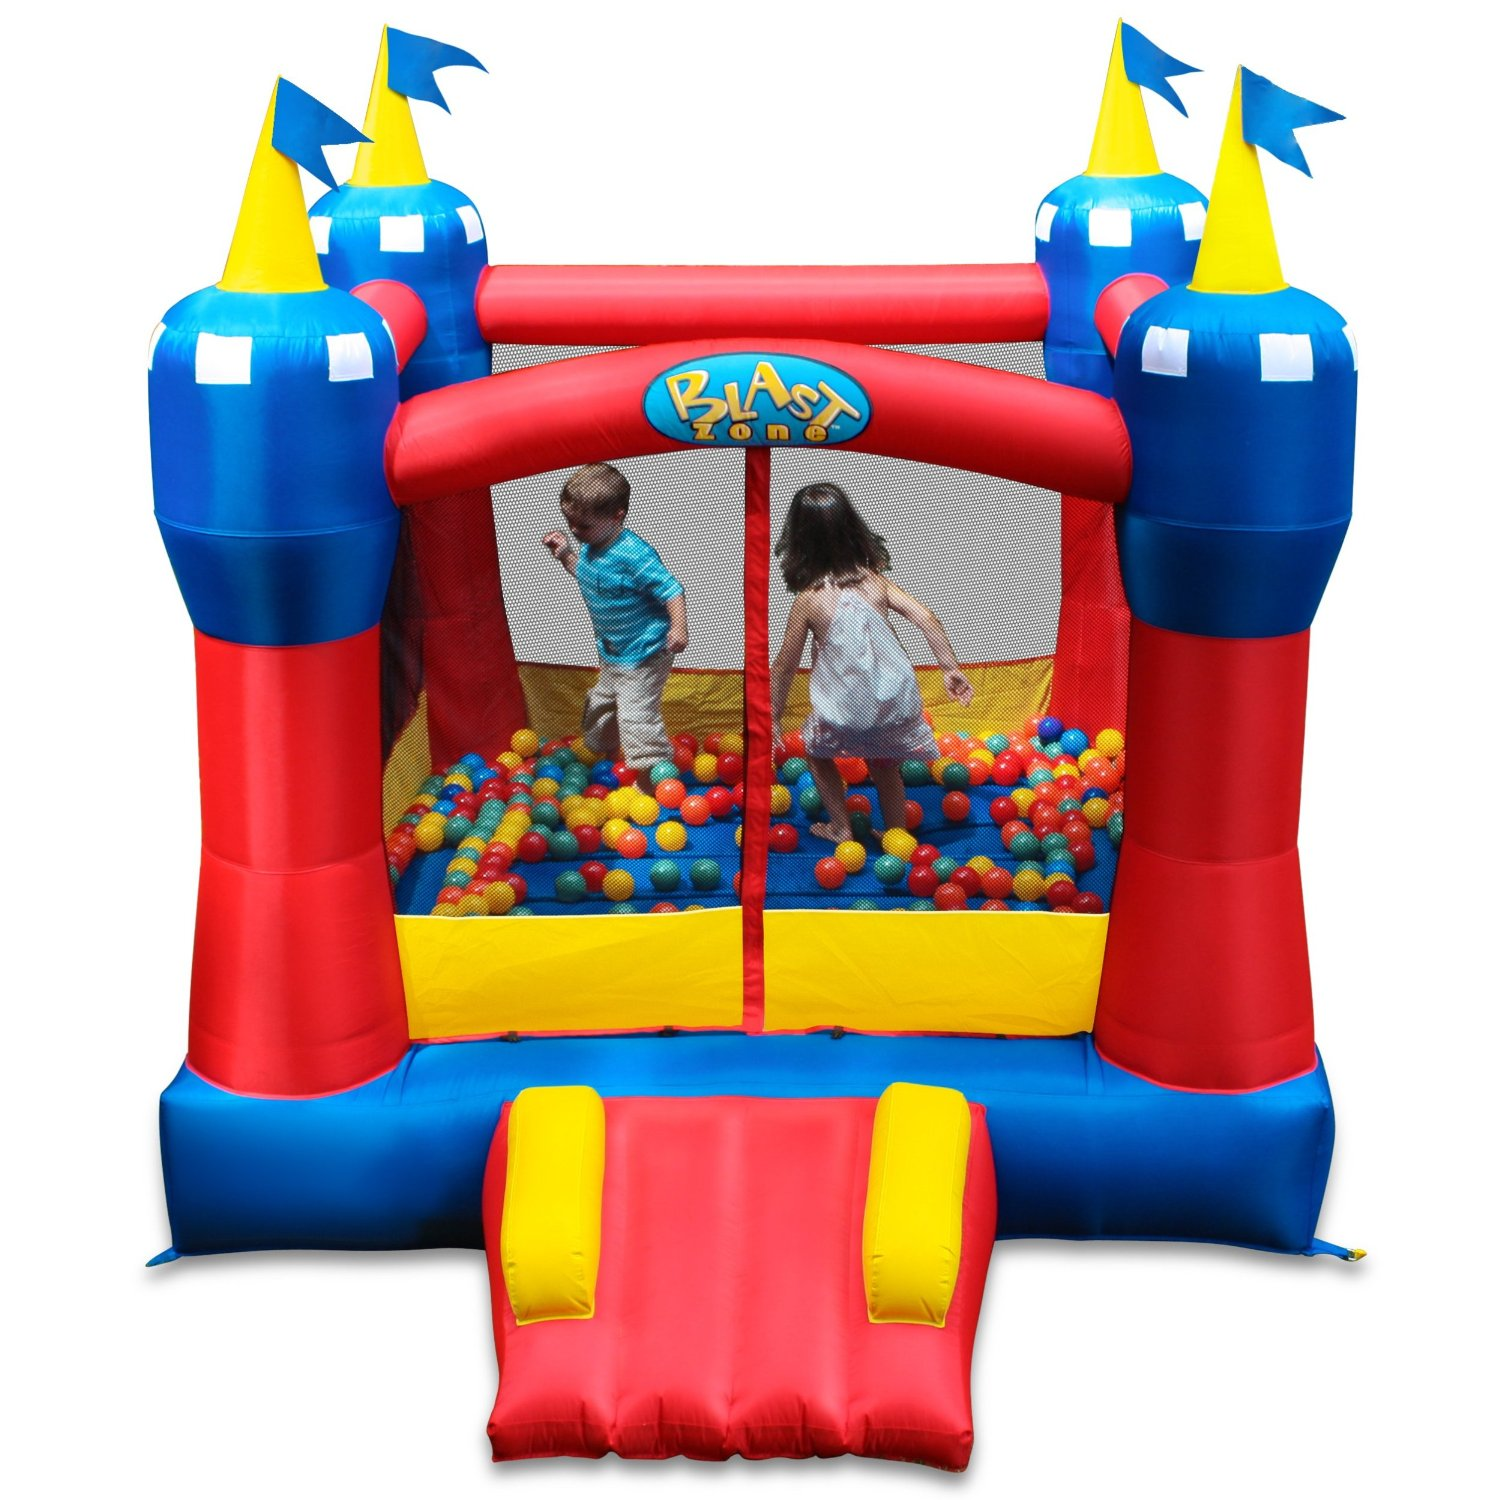 Fancy Little Tikes Bounce House For Play Yard Ideas: Pretty Little Tikes Bounce House Made Of Caoutchouc In Castle Design For Kids Play Room Ideas